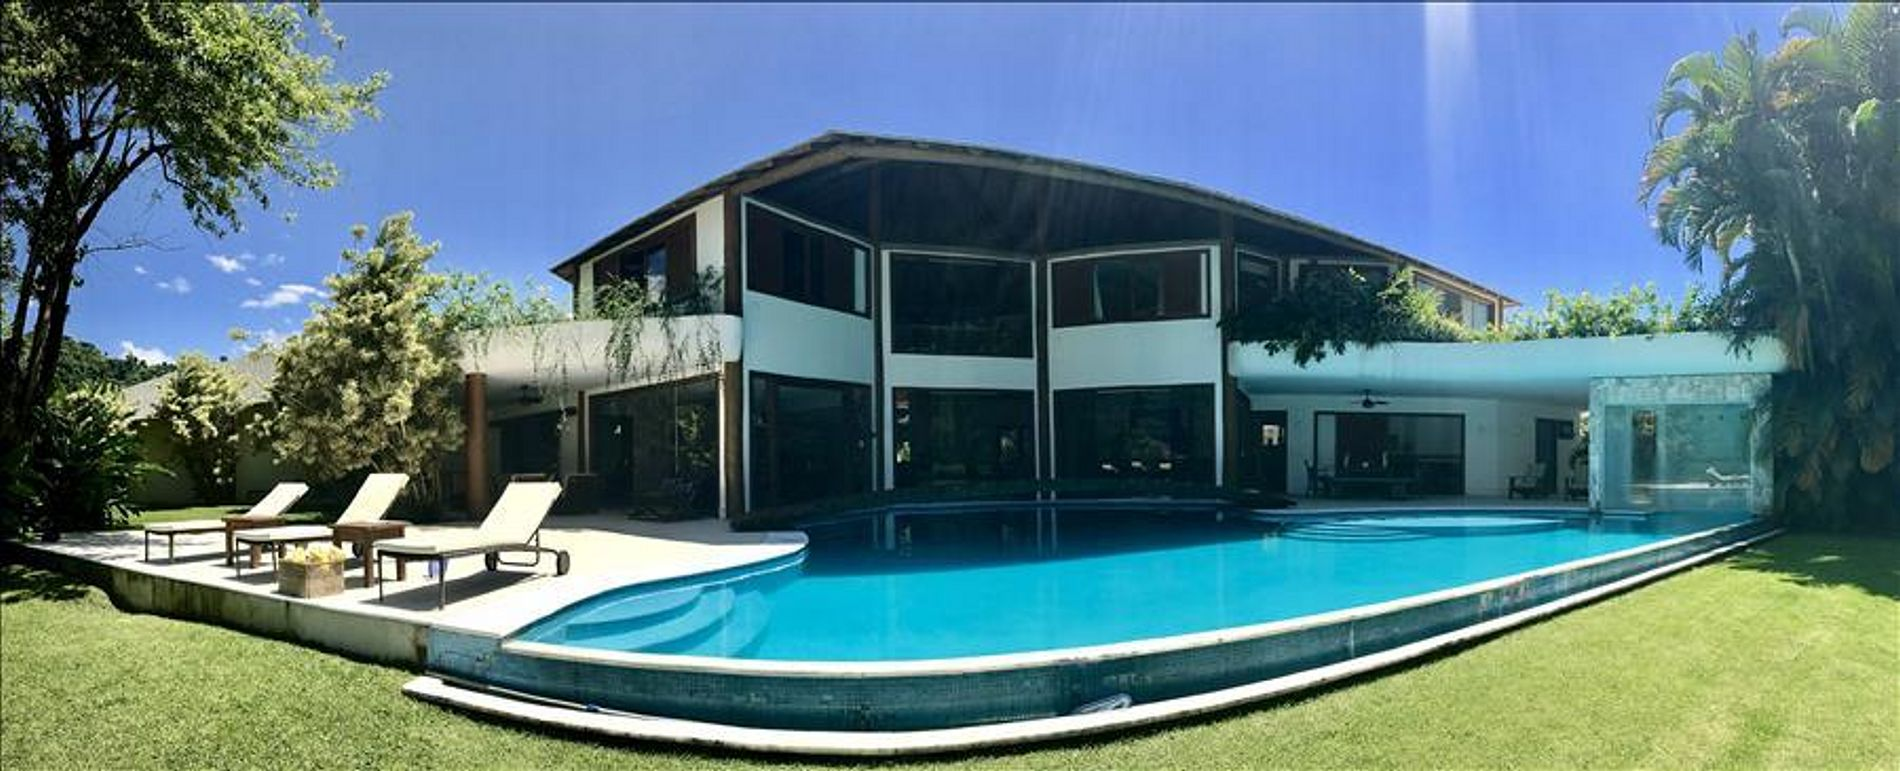 Rental house vacation in Angra dos Reis, RJ